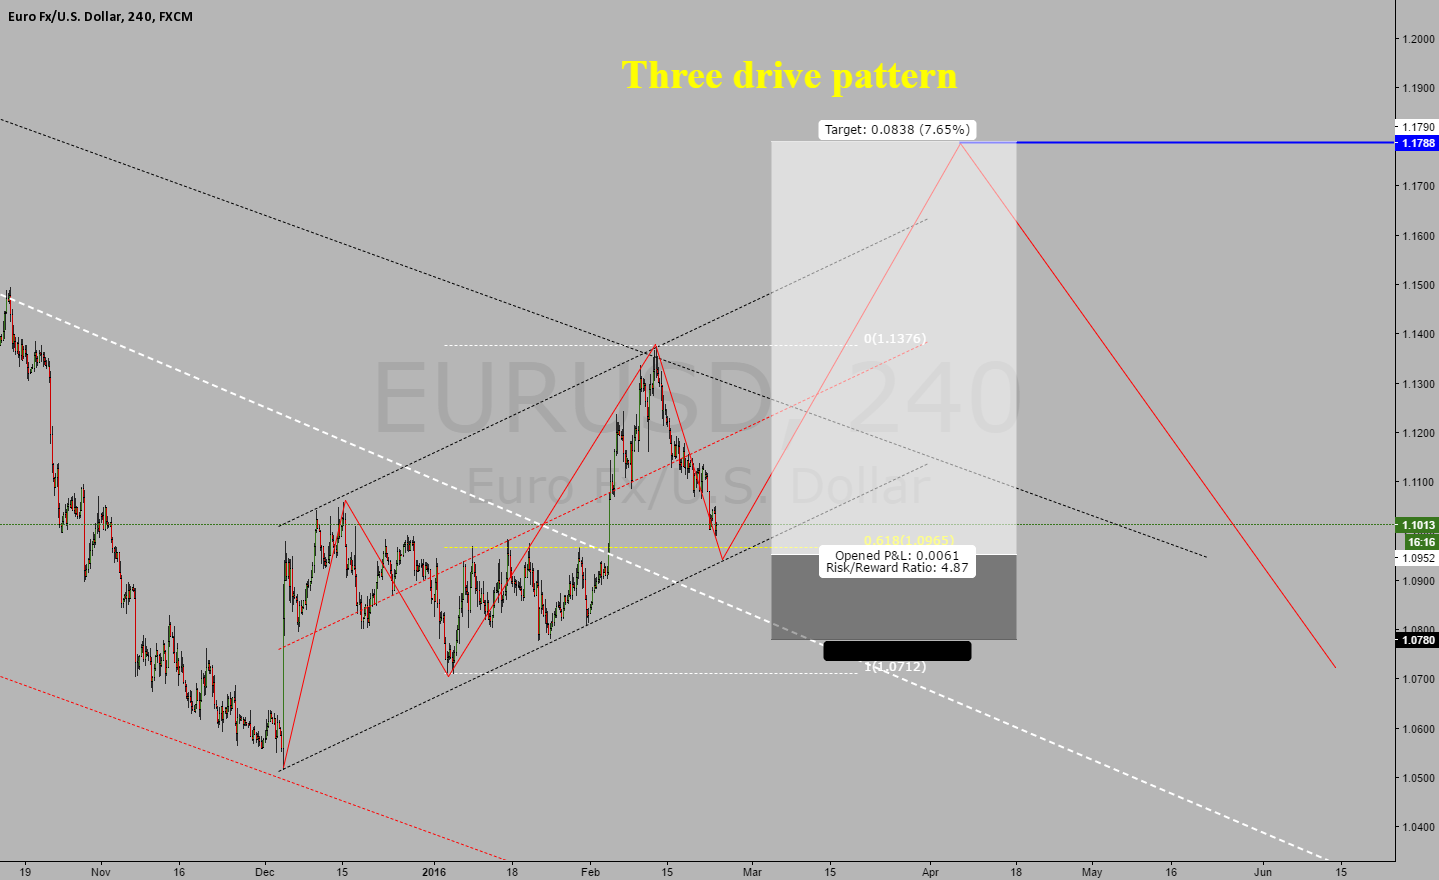 eurusd, possible three drive pattern